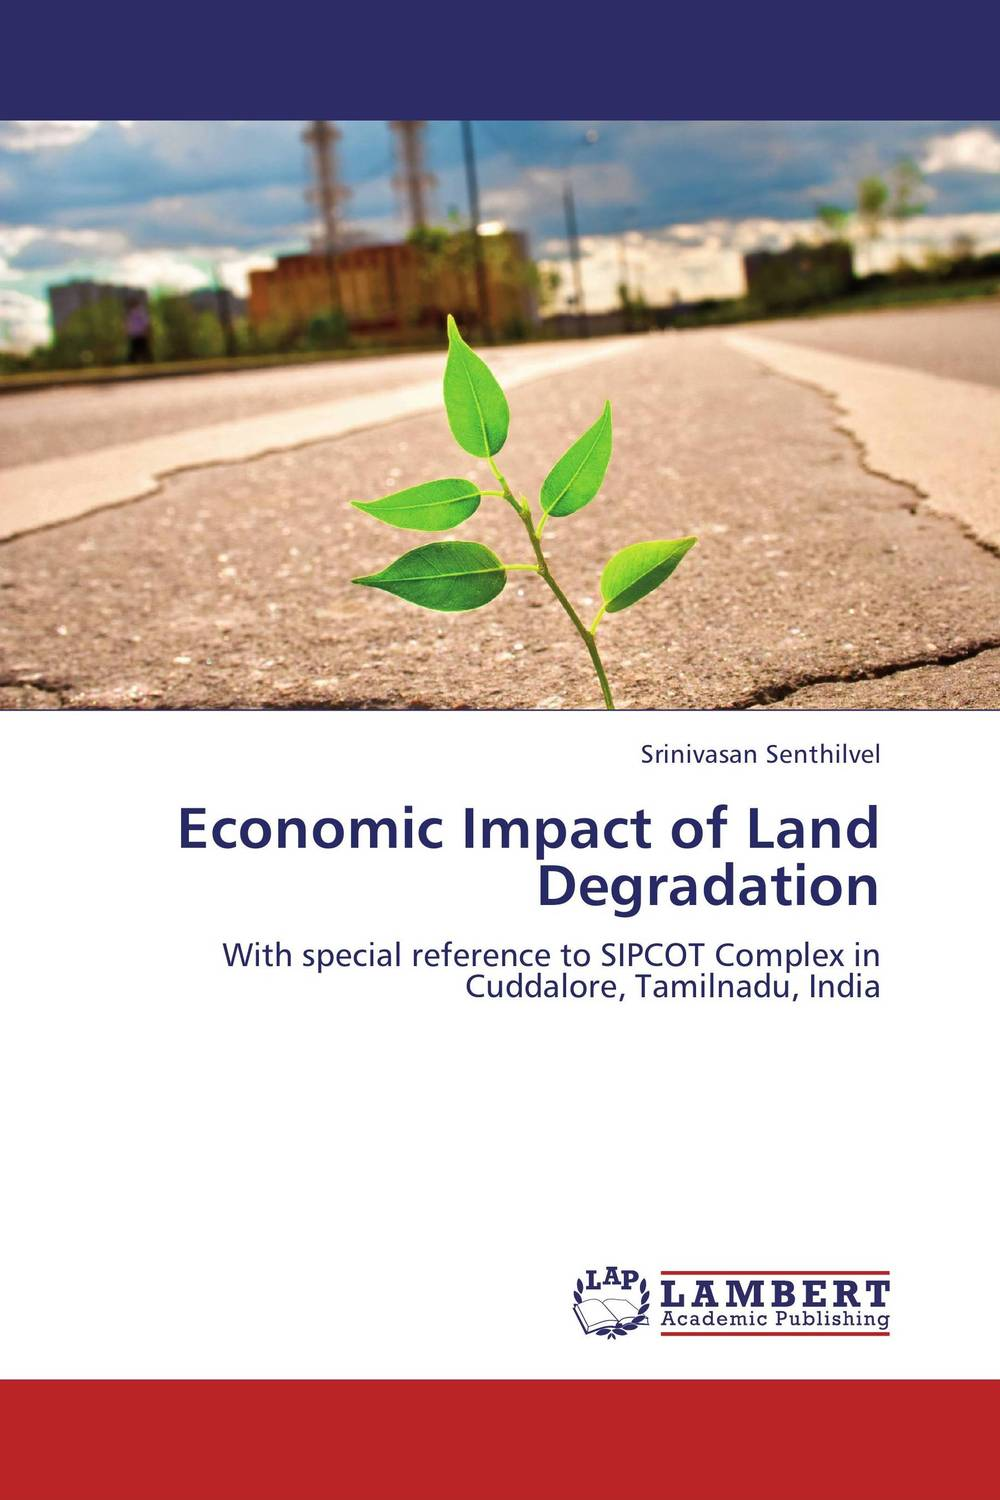 Economic Impact of Land Degradation